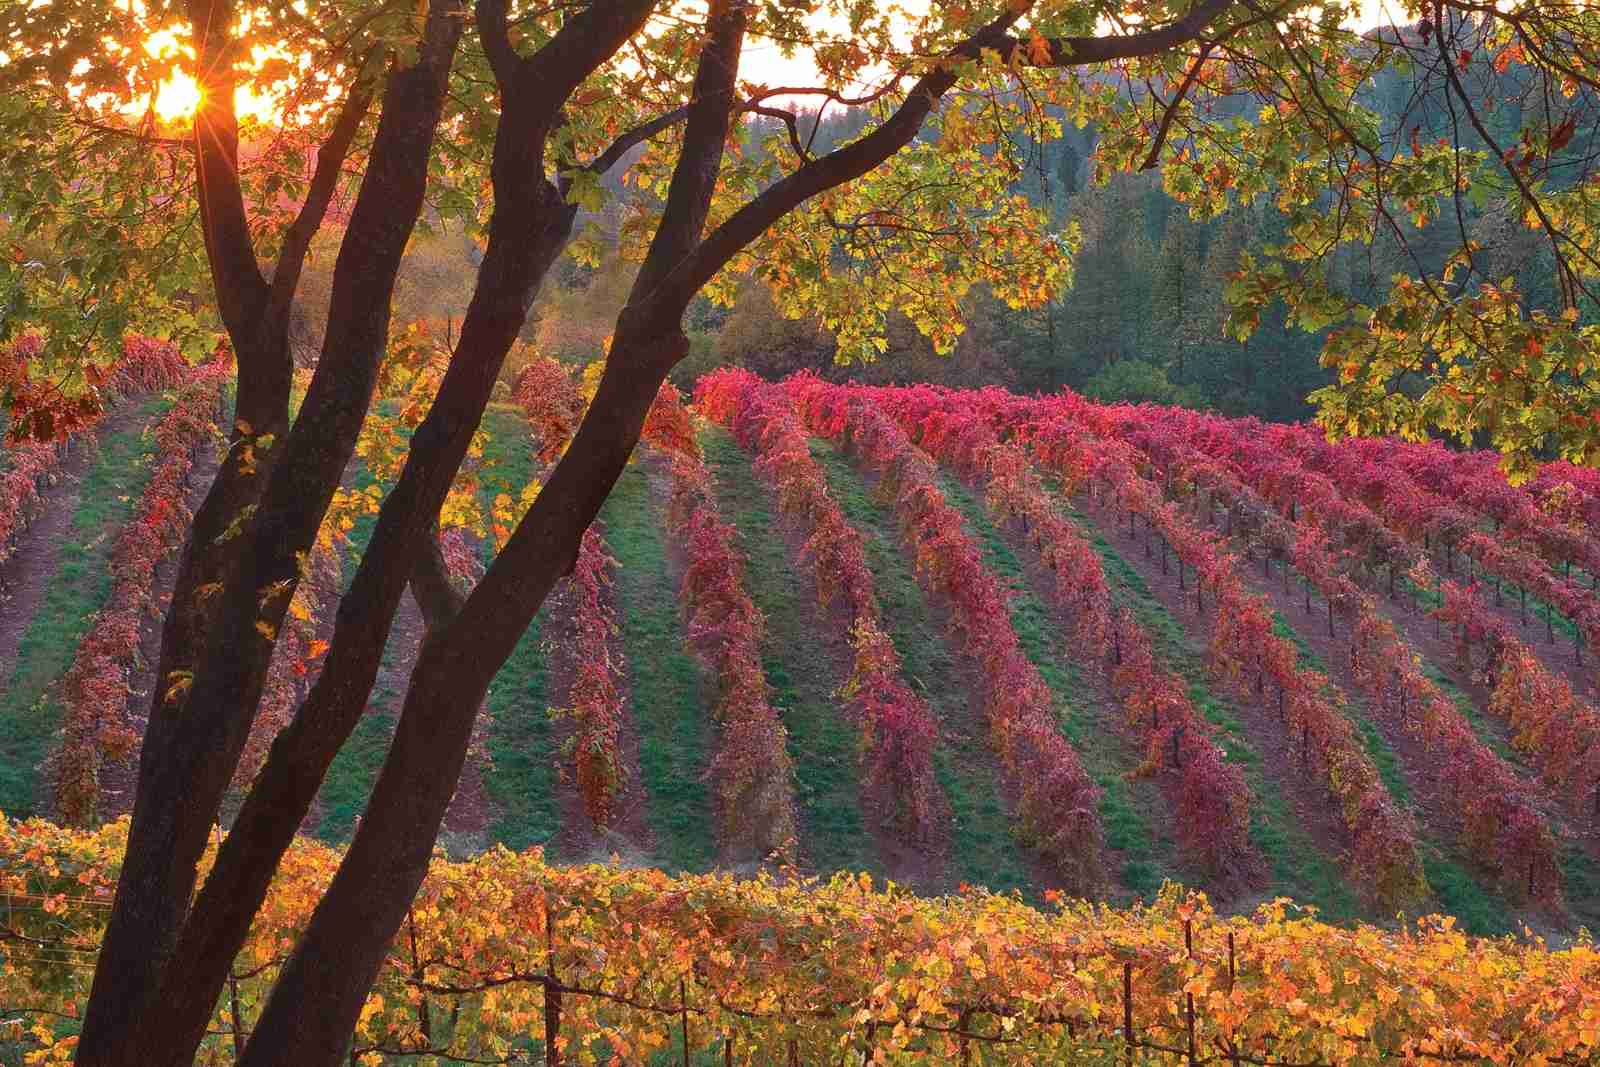 Boeger Vineyard in Placerville. (Photo by Provided by jp2pix.com/Getty Images)